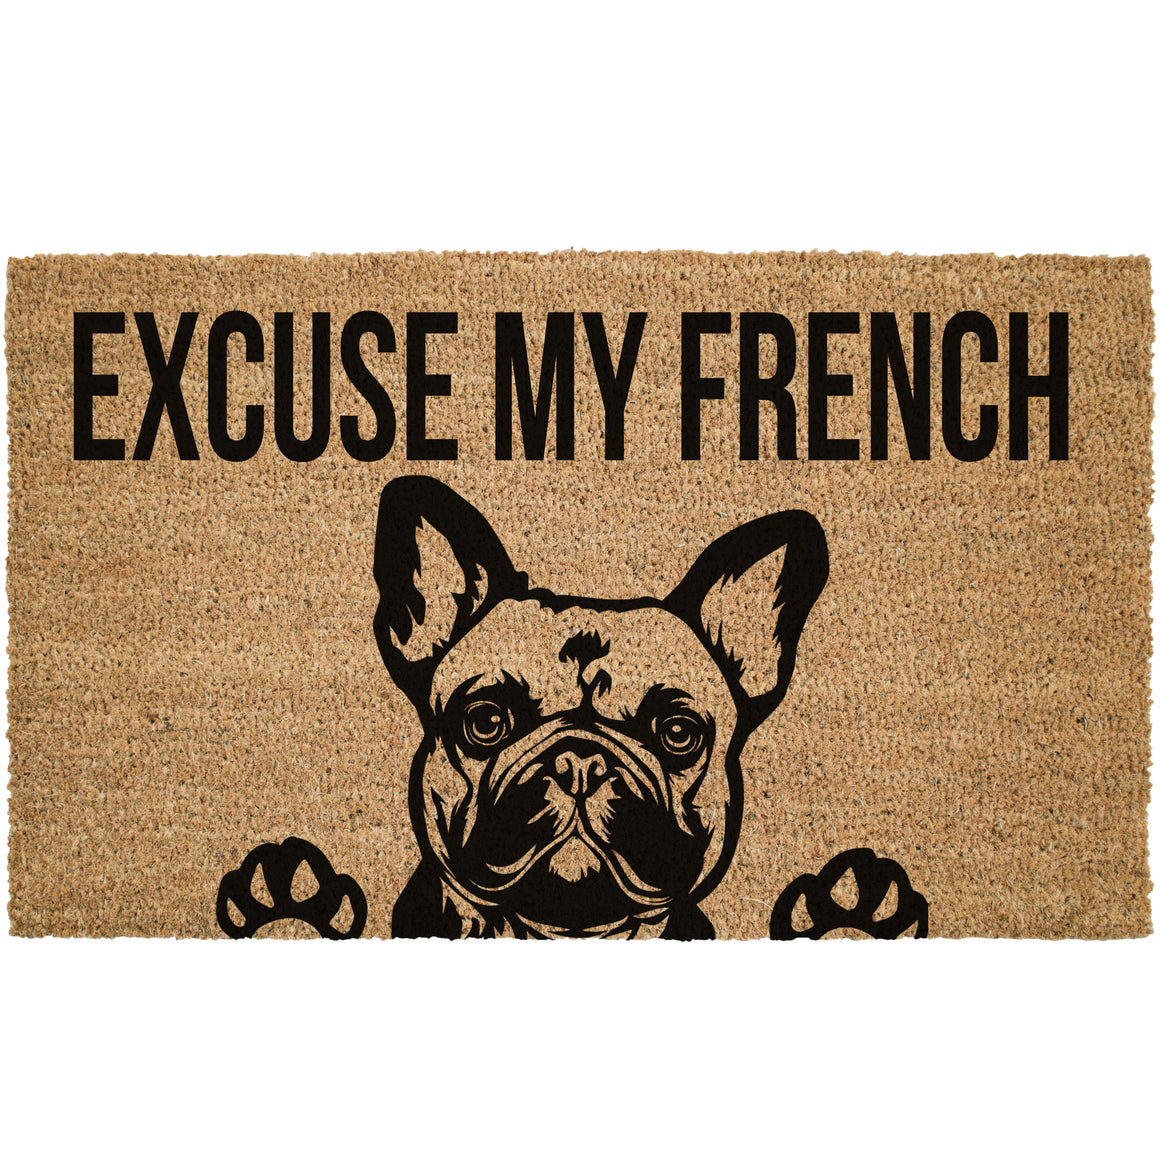 Excuse My French Coir Doormat